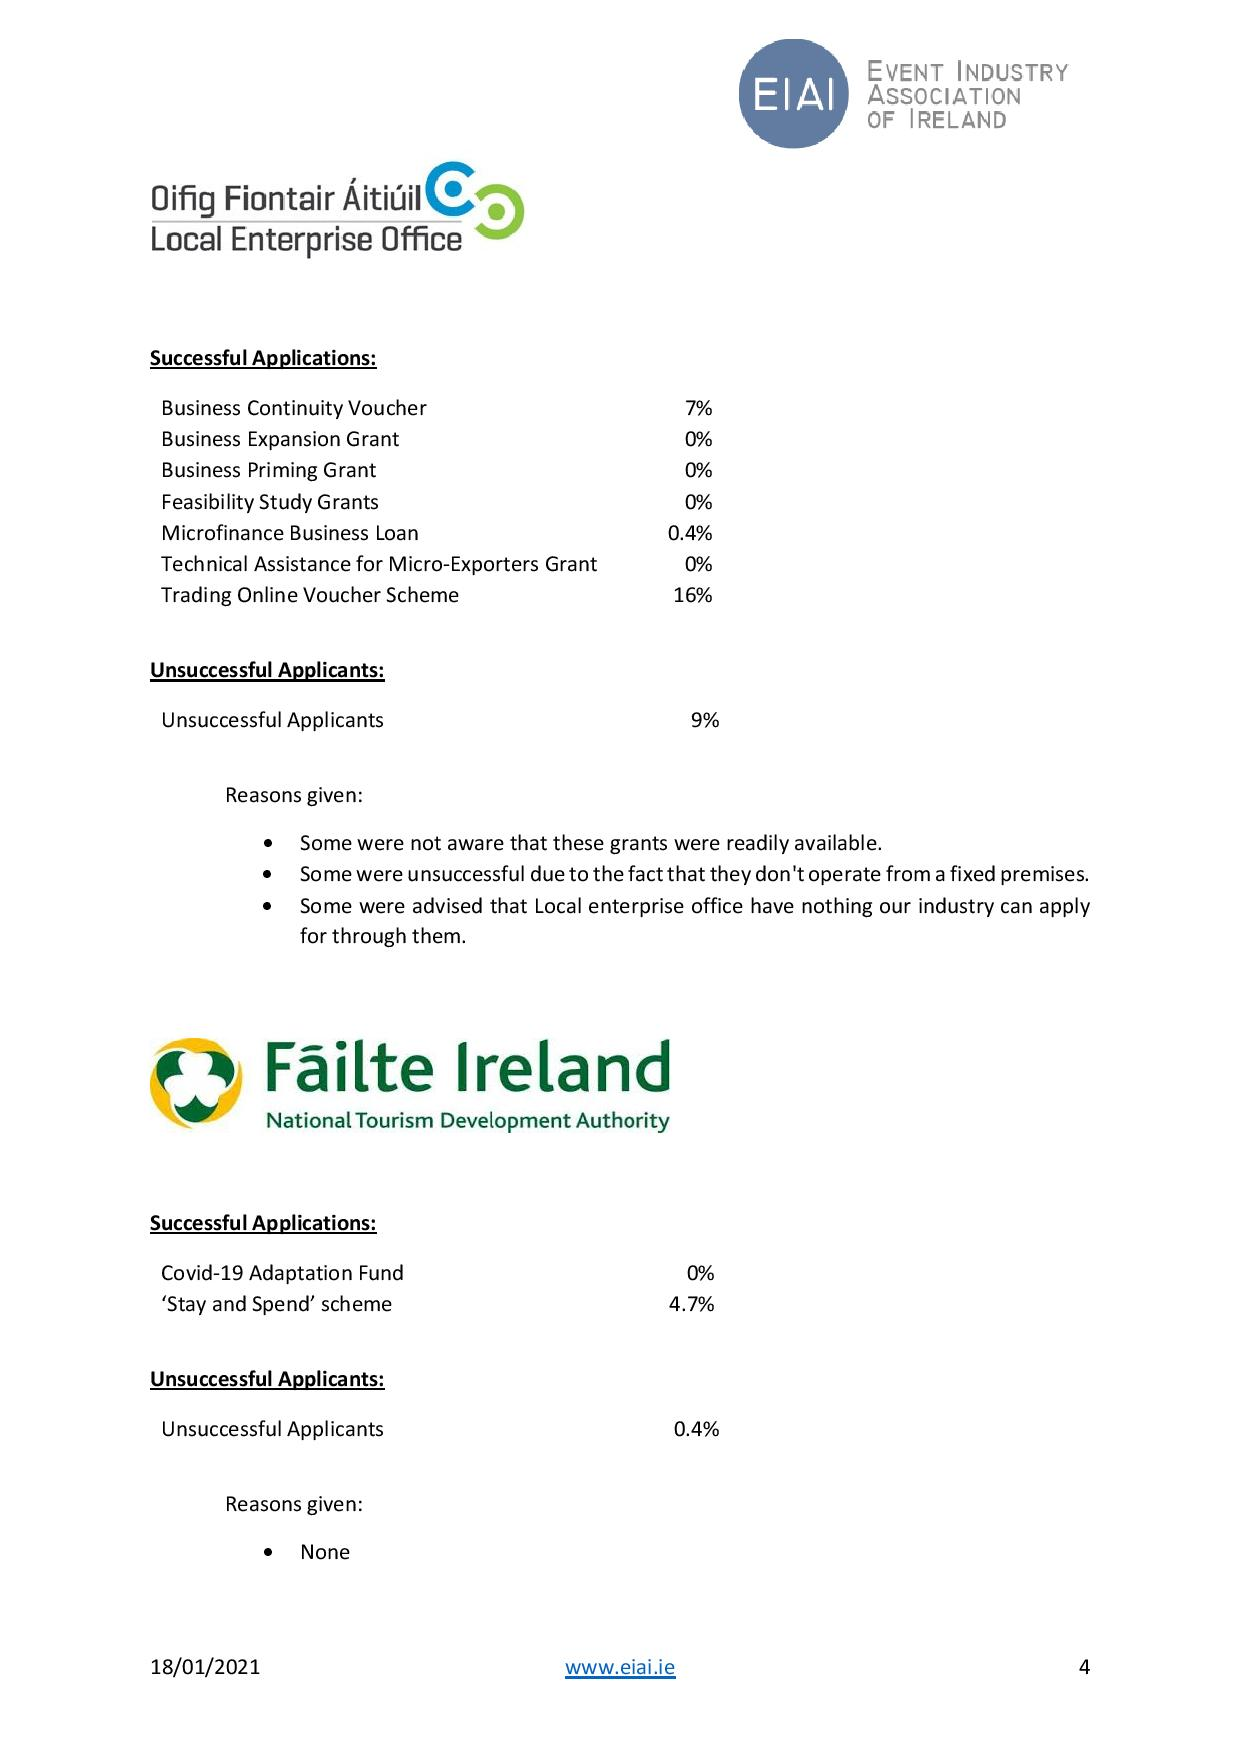 EIAI_Funding&SupportSurveyResults_18012021-page-004 (2)